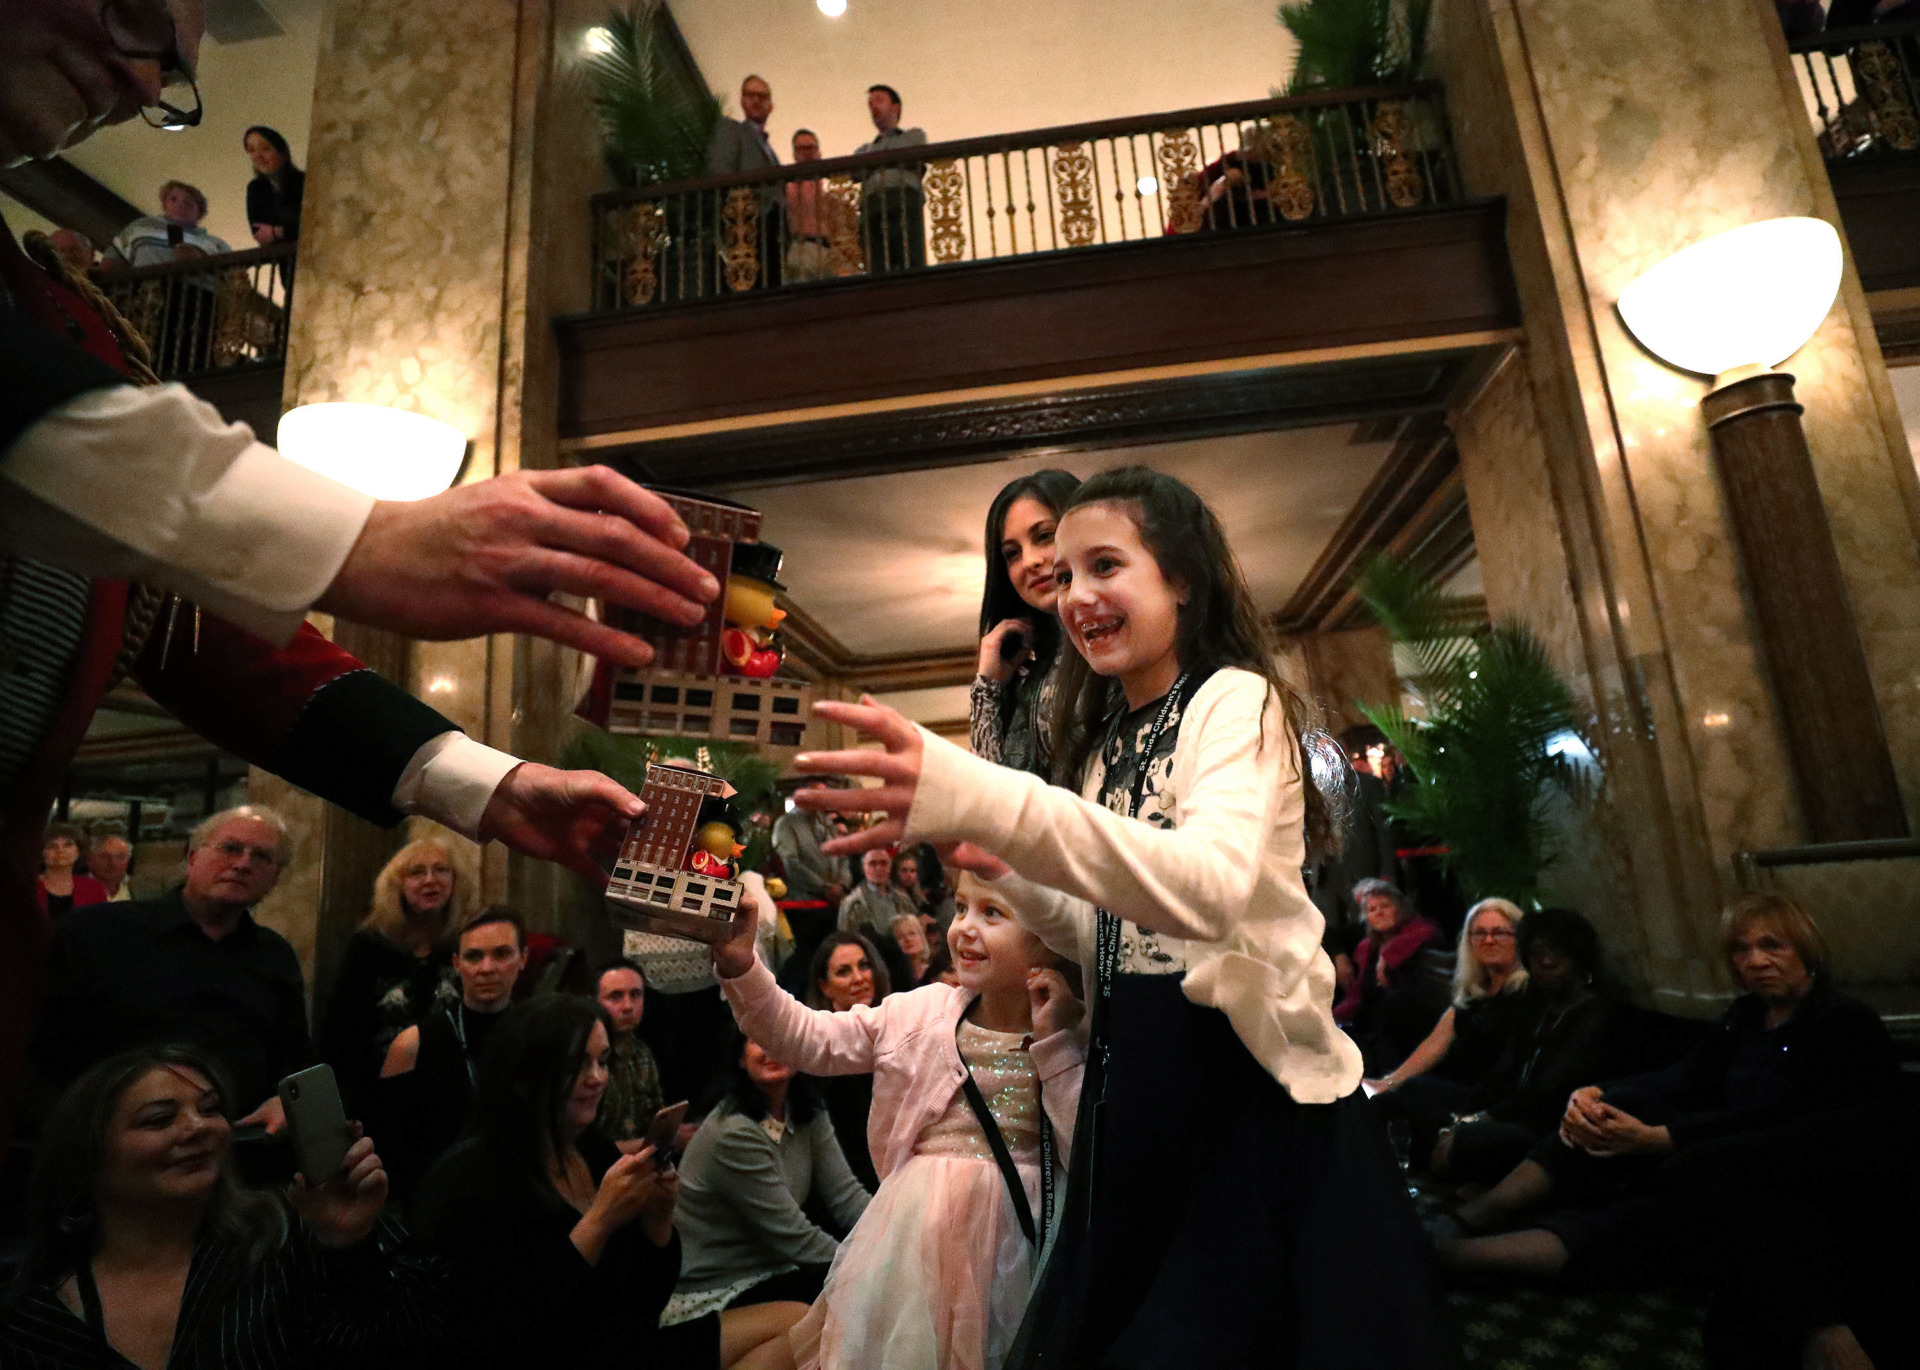 <strong>Peabody duckmaster and hotel historian Doug Weatherford hands rubber duck gifts to special guests Lucy Malouf (left), 4, Shelby Malouf (center), 15, and Charley Malouf (right), 9, on Wednesday, Feb. 6, 2019. In conjunction with the launch of its 150th anniversary celebration, the hotel has completed an $8.5 million renovation of its grand lobby and all 464 guest rooms and suites.</strong> (Houston Cofield/Daily Memphian)